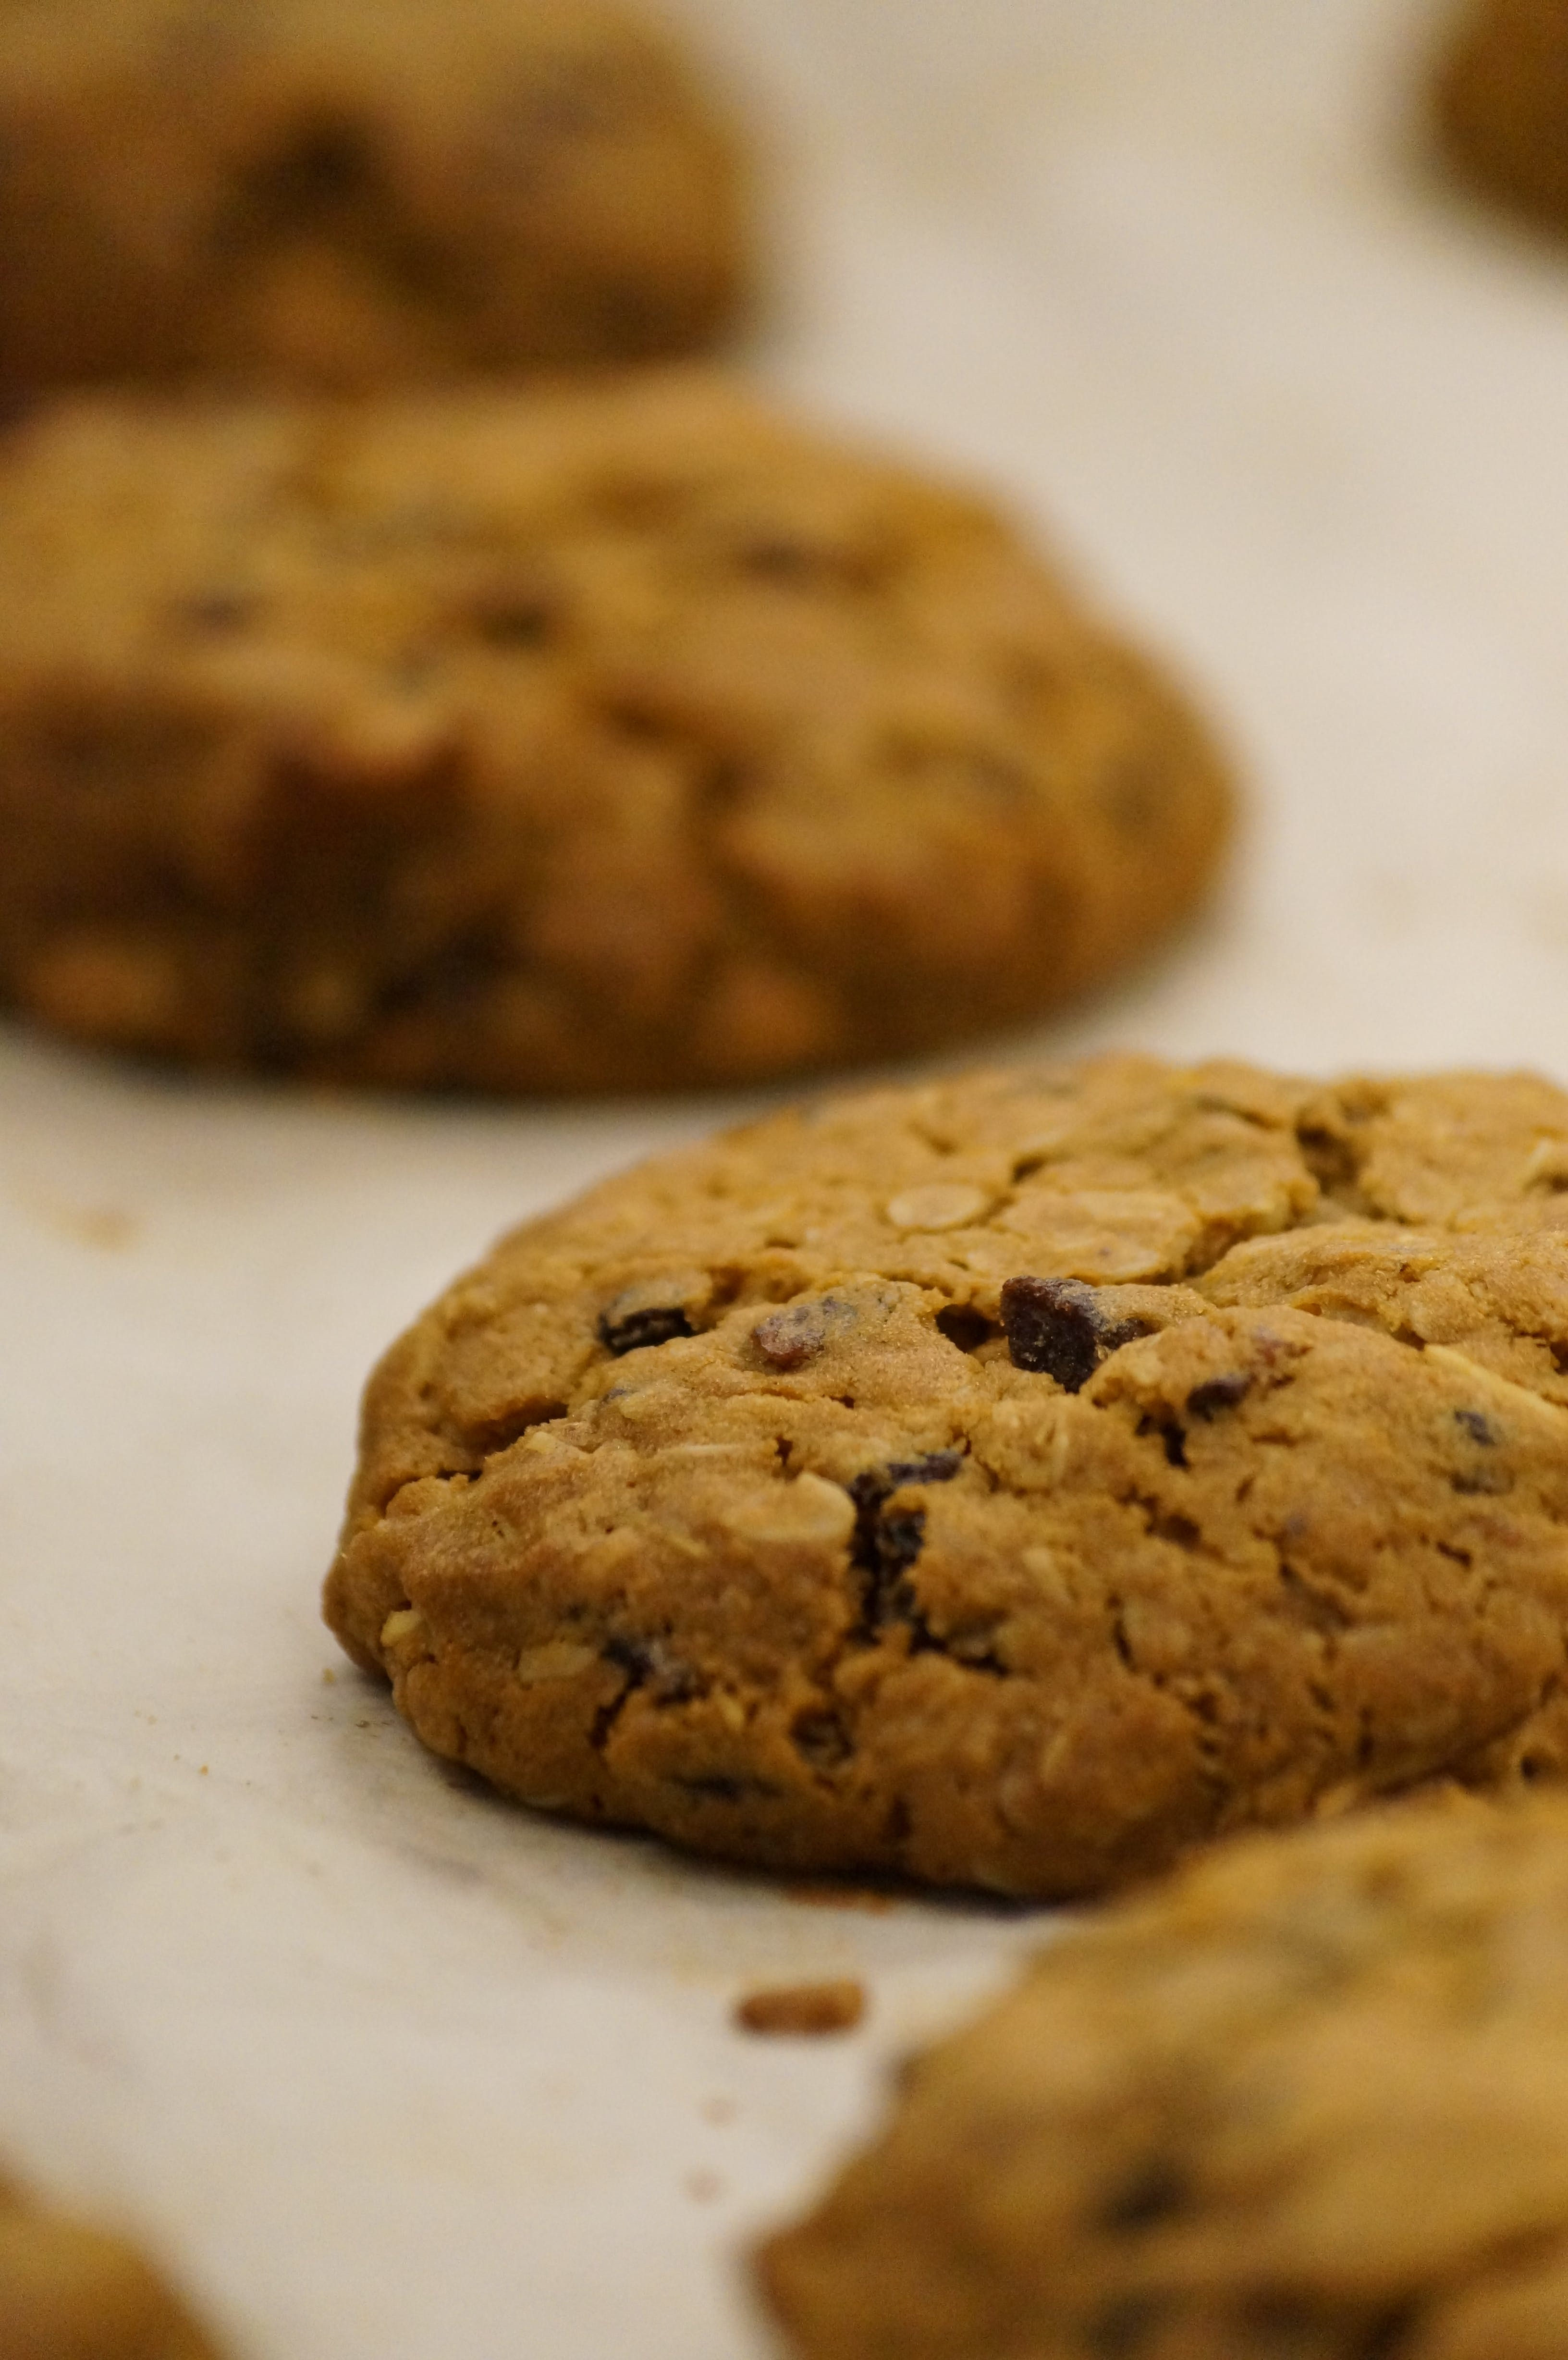 Freshly baked handmade cookies out of the Whisk and Pin oven in katoomba. www.whiskandpin.com.au